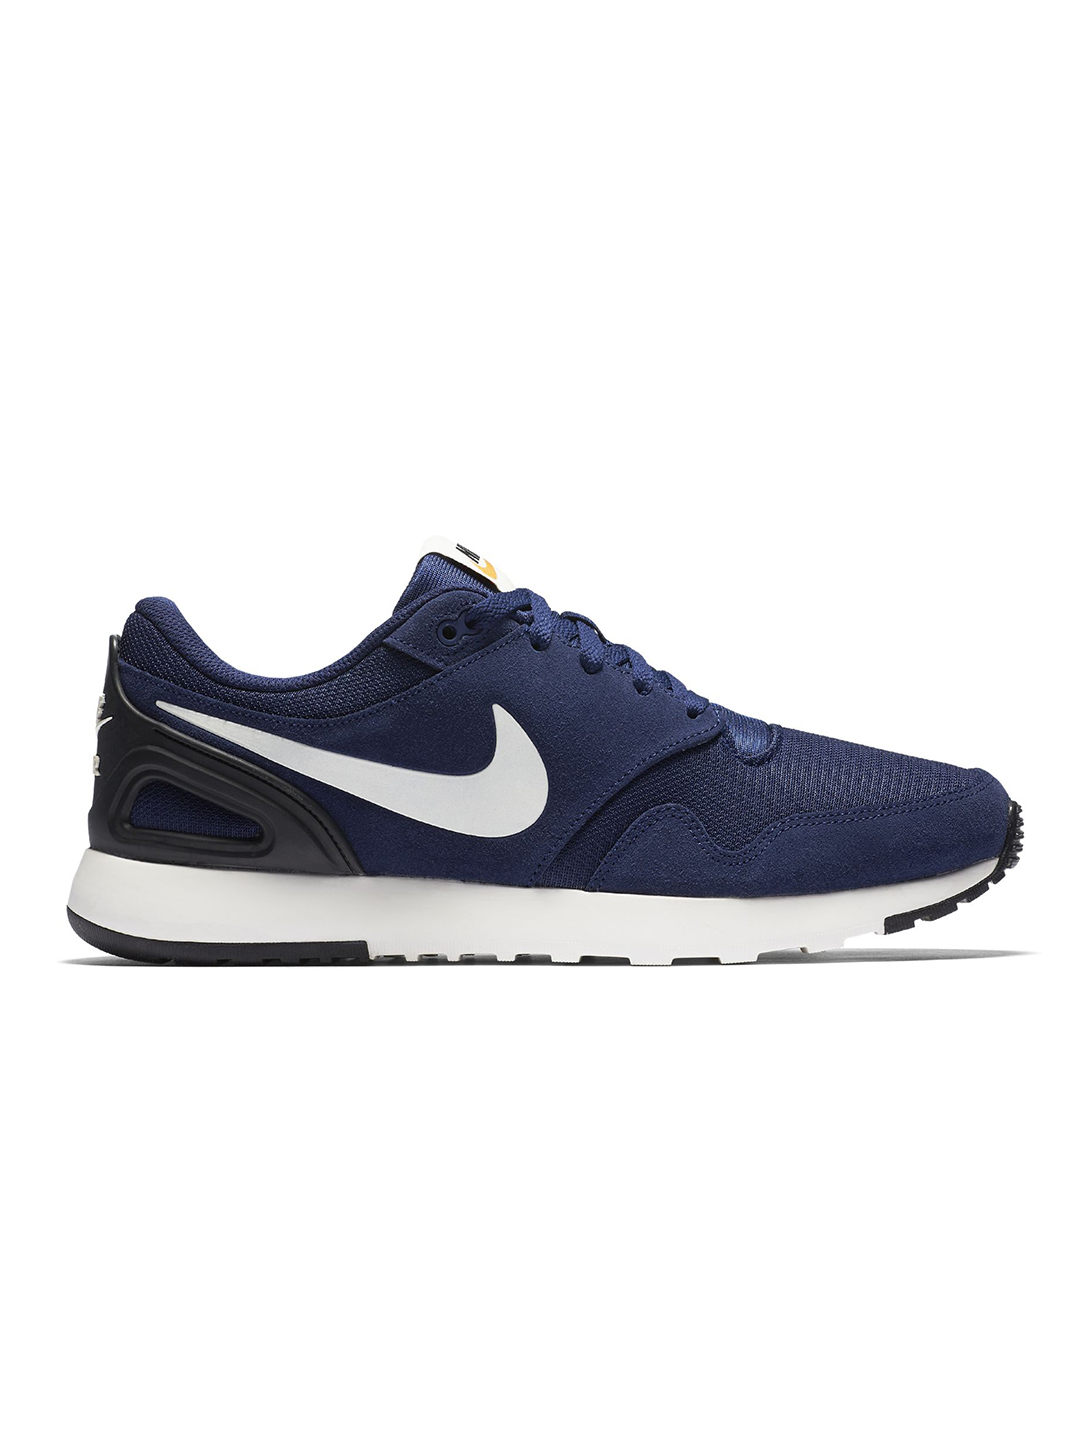 Indian Mag Online Dot Com Shoes Buy Nike Television qAwUII